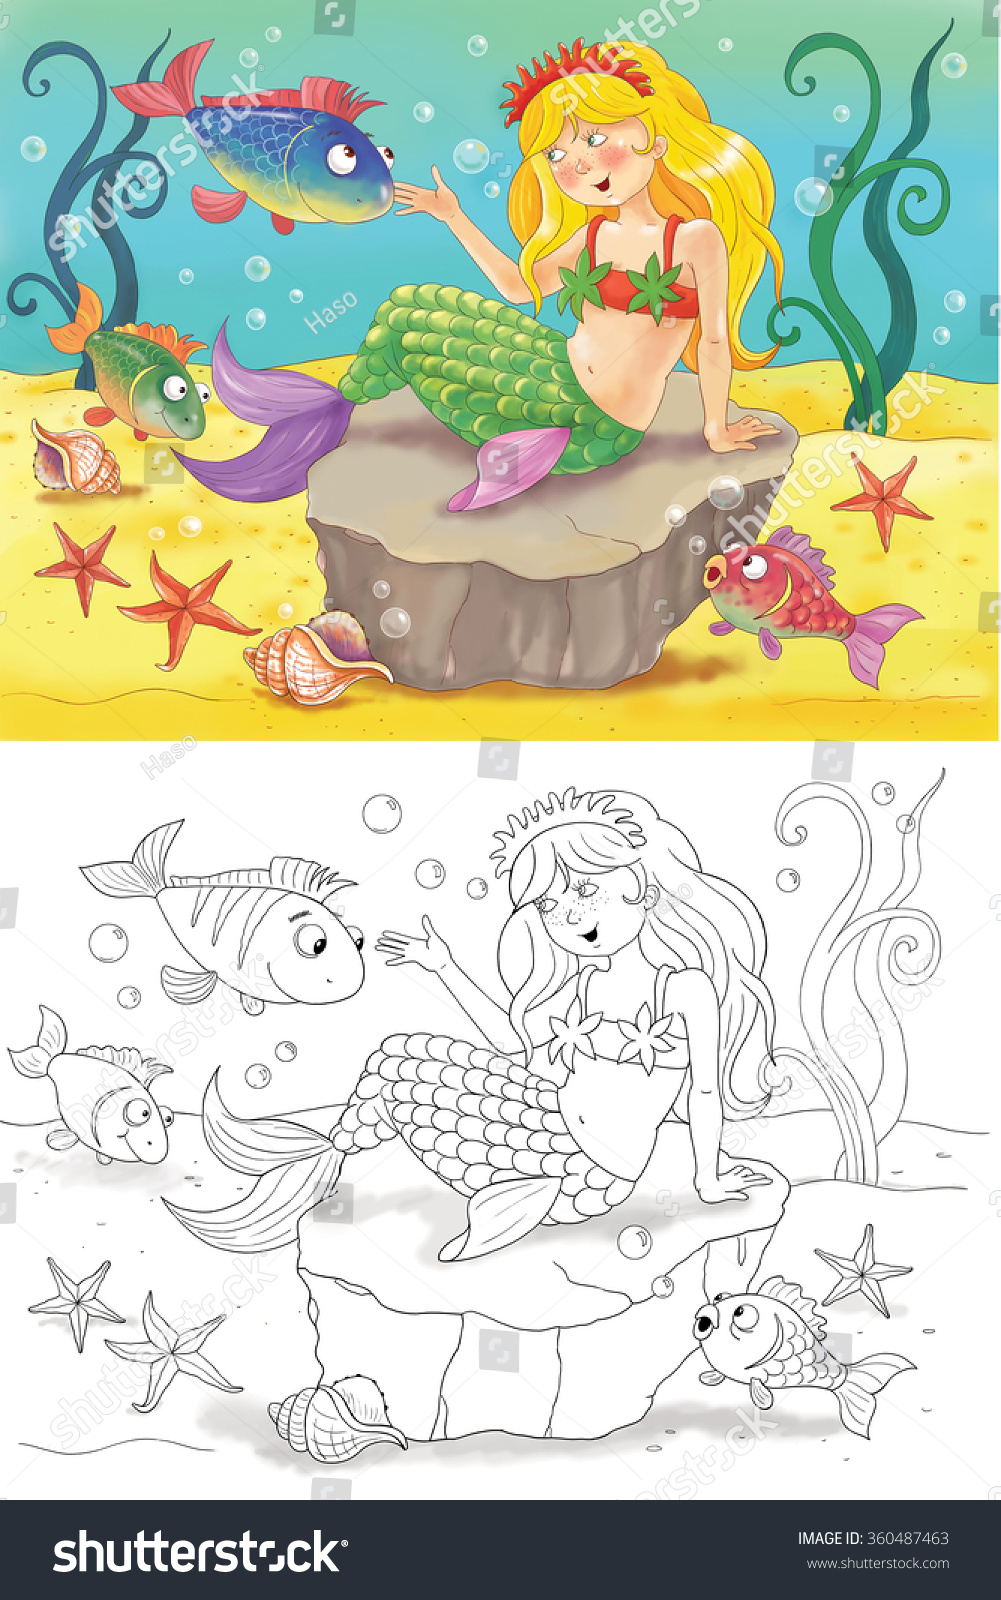 Little Mermaid Fairy Tale Illustration Children Stock Illustration ...